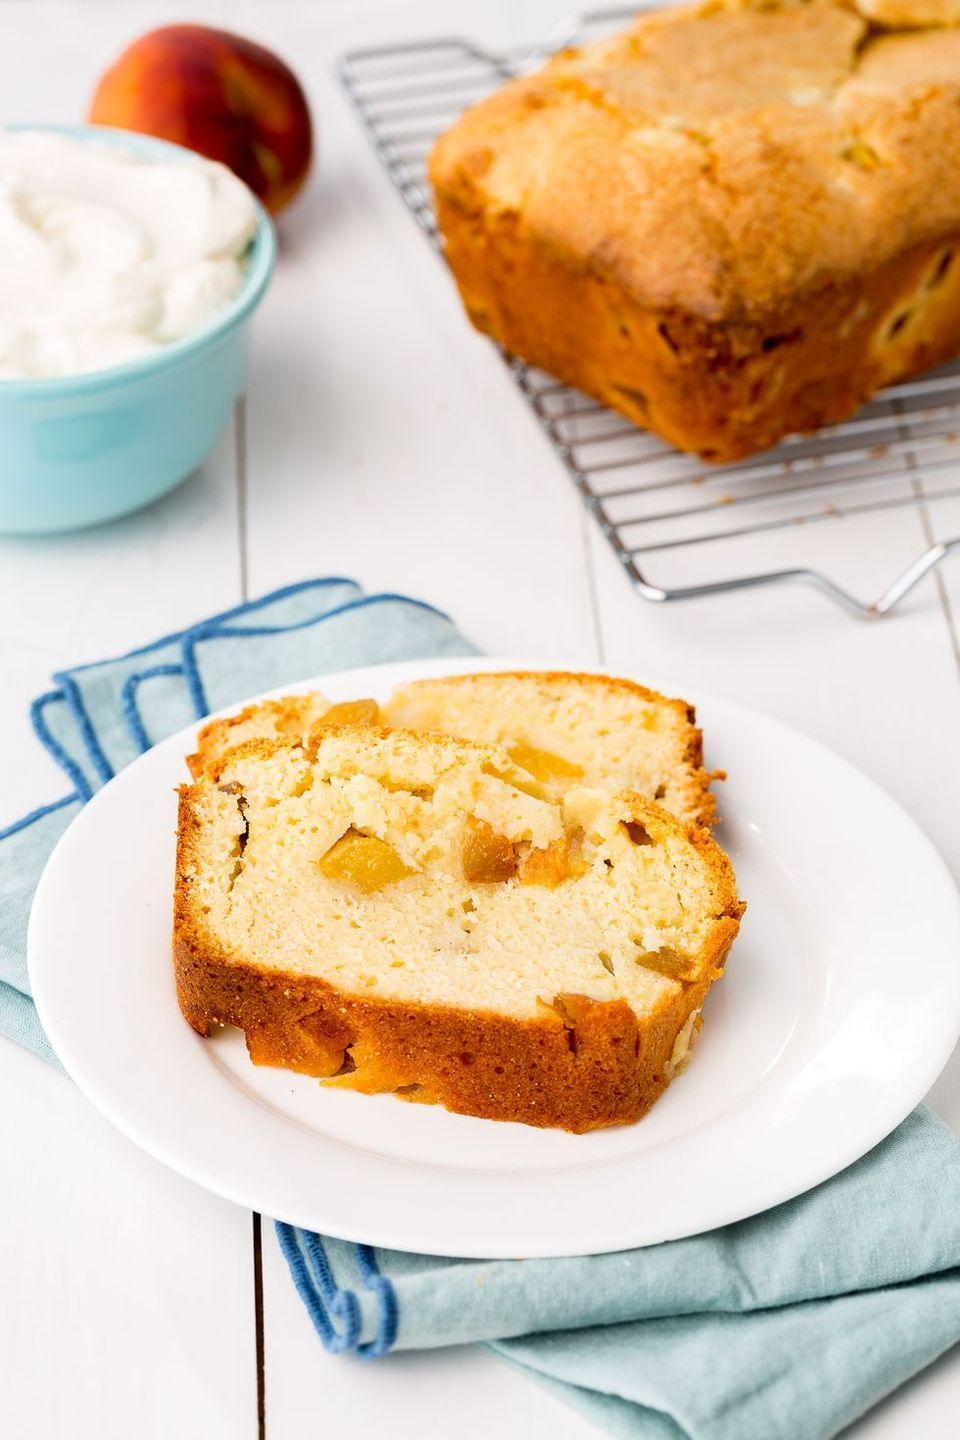 """<p>Less than 10 ingredients and peak-summer produce make this cake easy, just like the season should be.</p><p><em><a href=""""https://www.delish.com/cooking/recipe-ideas/recipes/a46949/peaches-cream-pound-cake-recipe/"""" rel=""""nofollow noopener"""" target=""""_blank"""" data-ylk=""""slk:Get the recipe from Delish »"""" class=""""link rapid-noclick-resp"""">Get the recipe from Delish »</a></em></p>"""